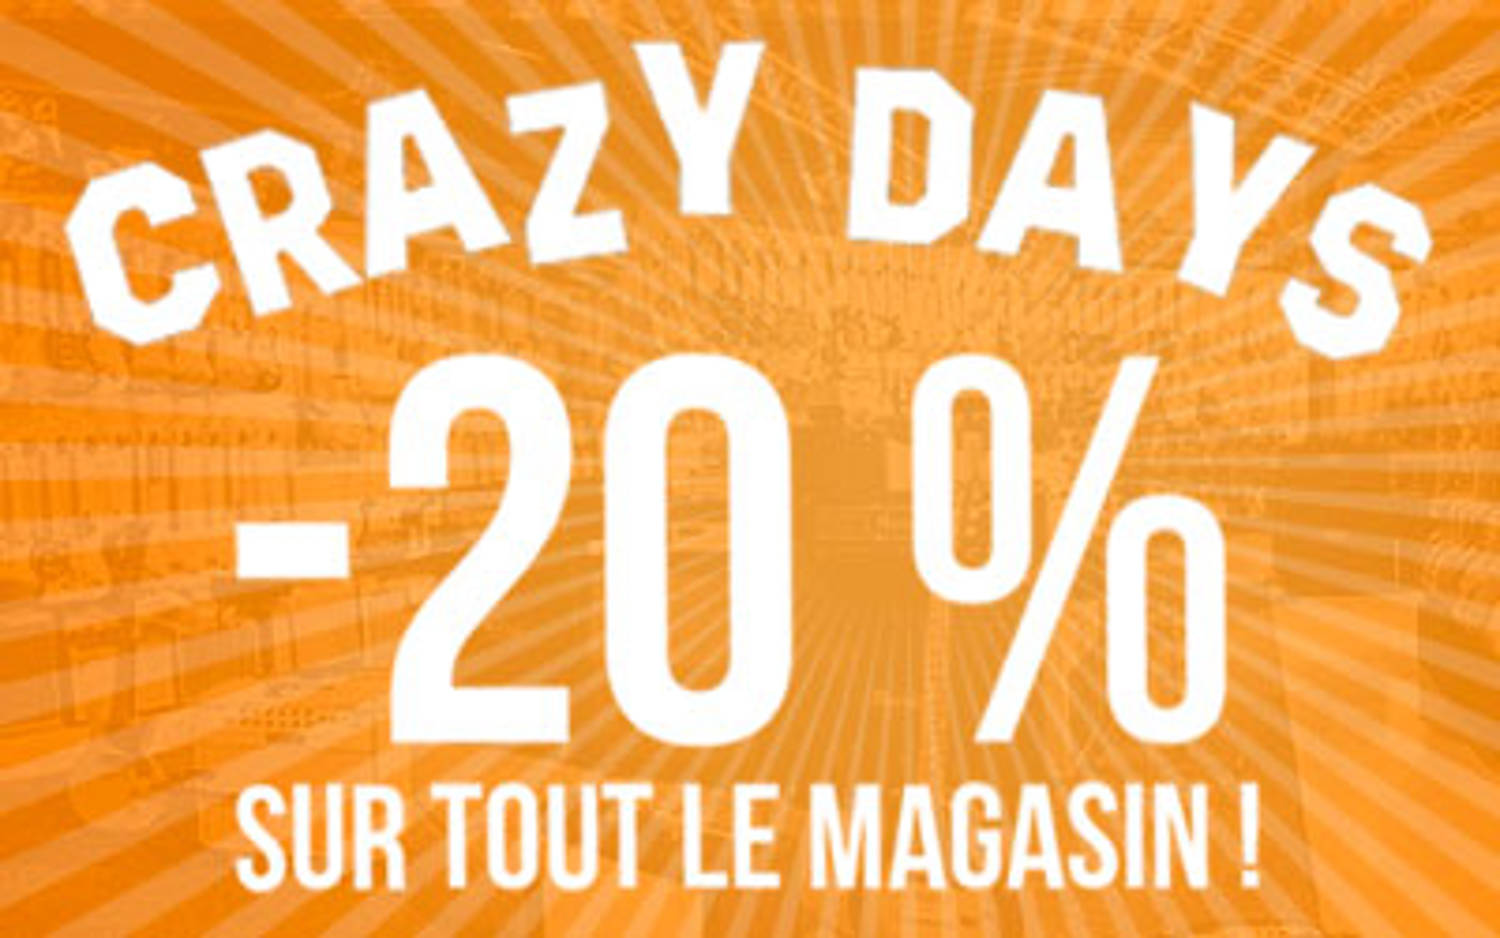 CRAZY DAYS ! -20% sur tout le magasin: Novembre 2017